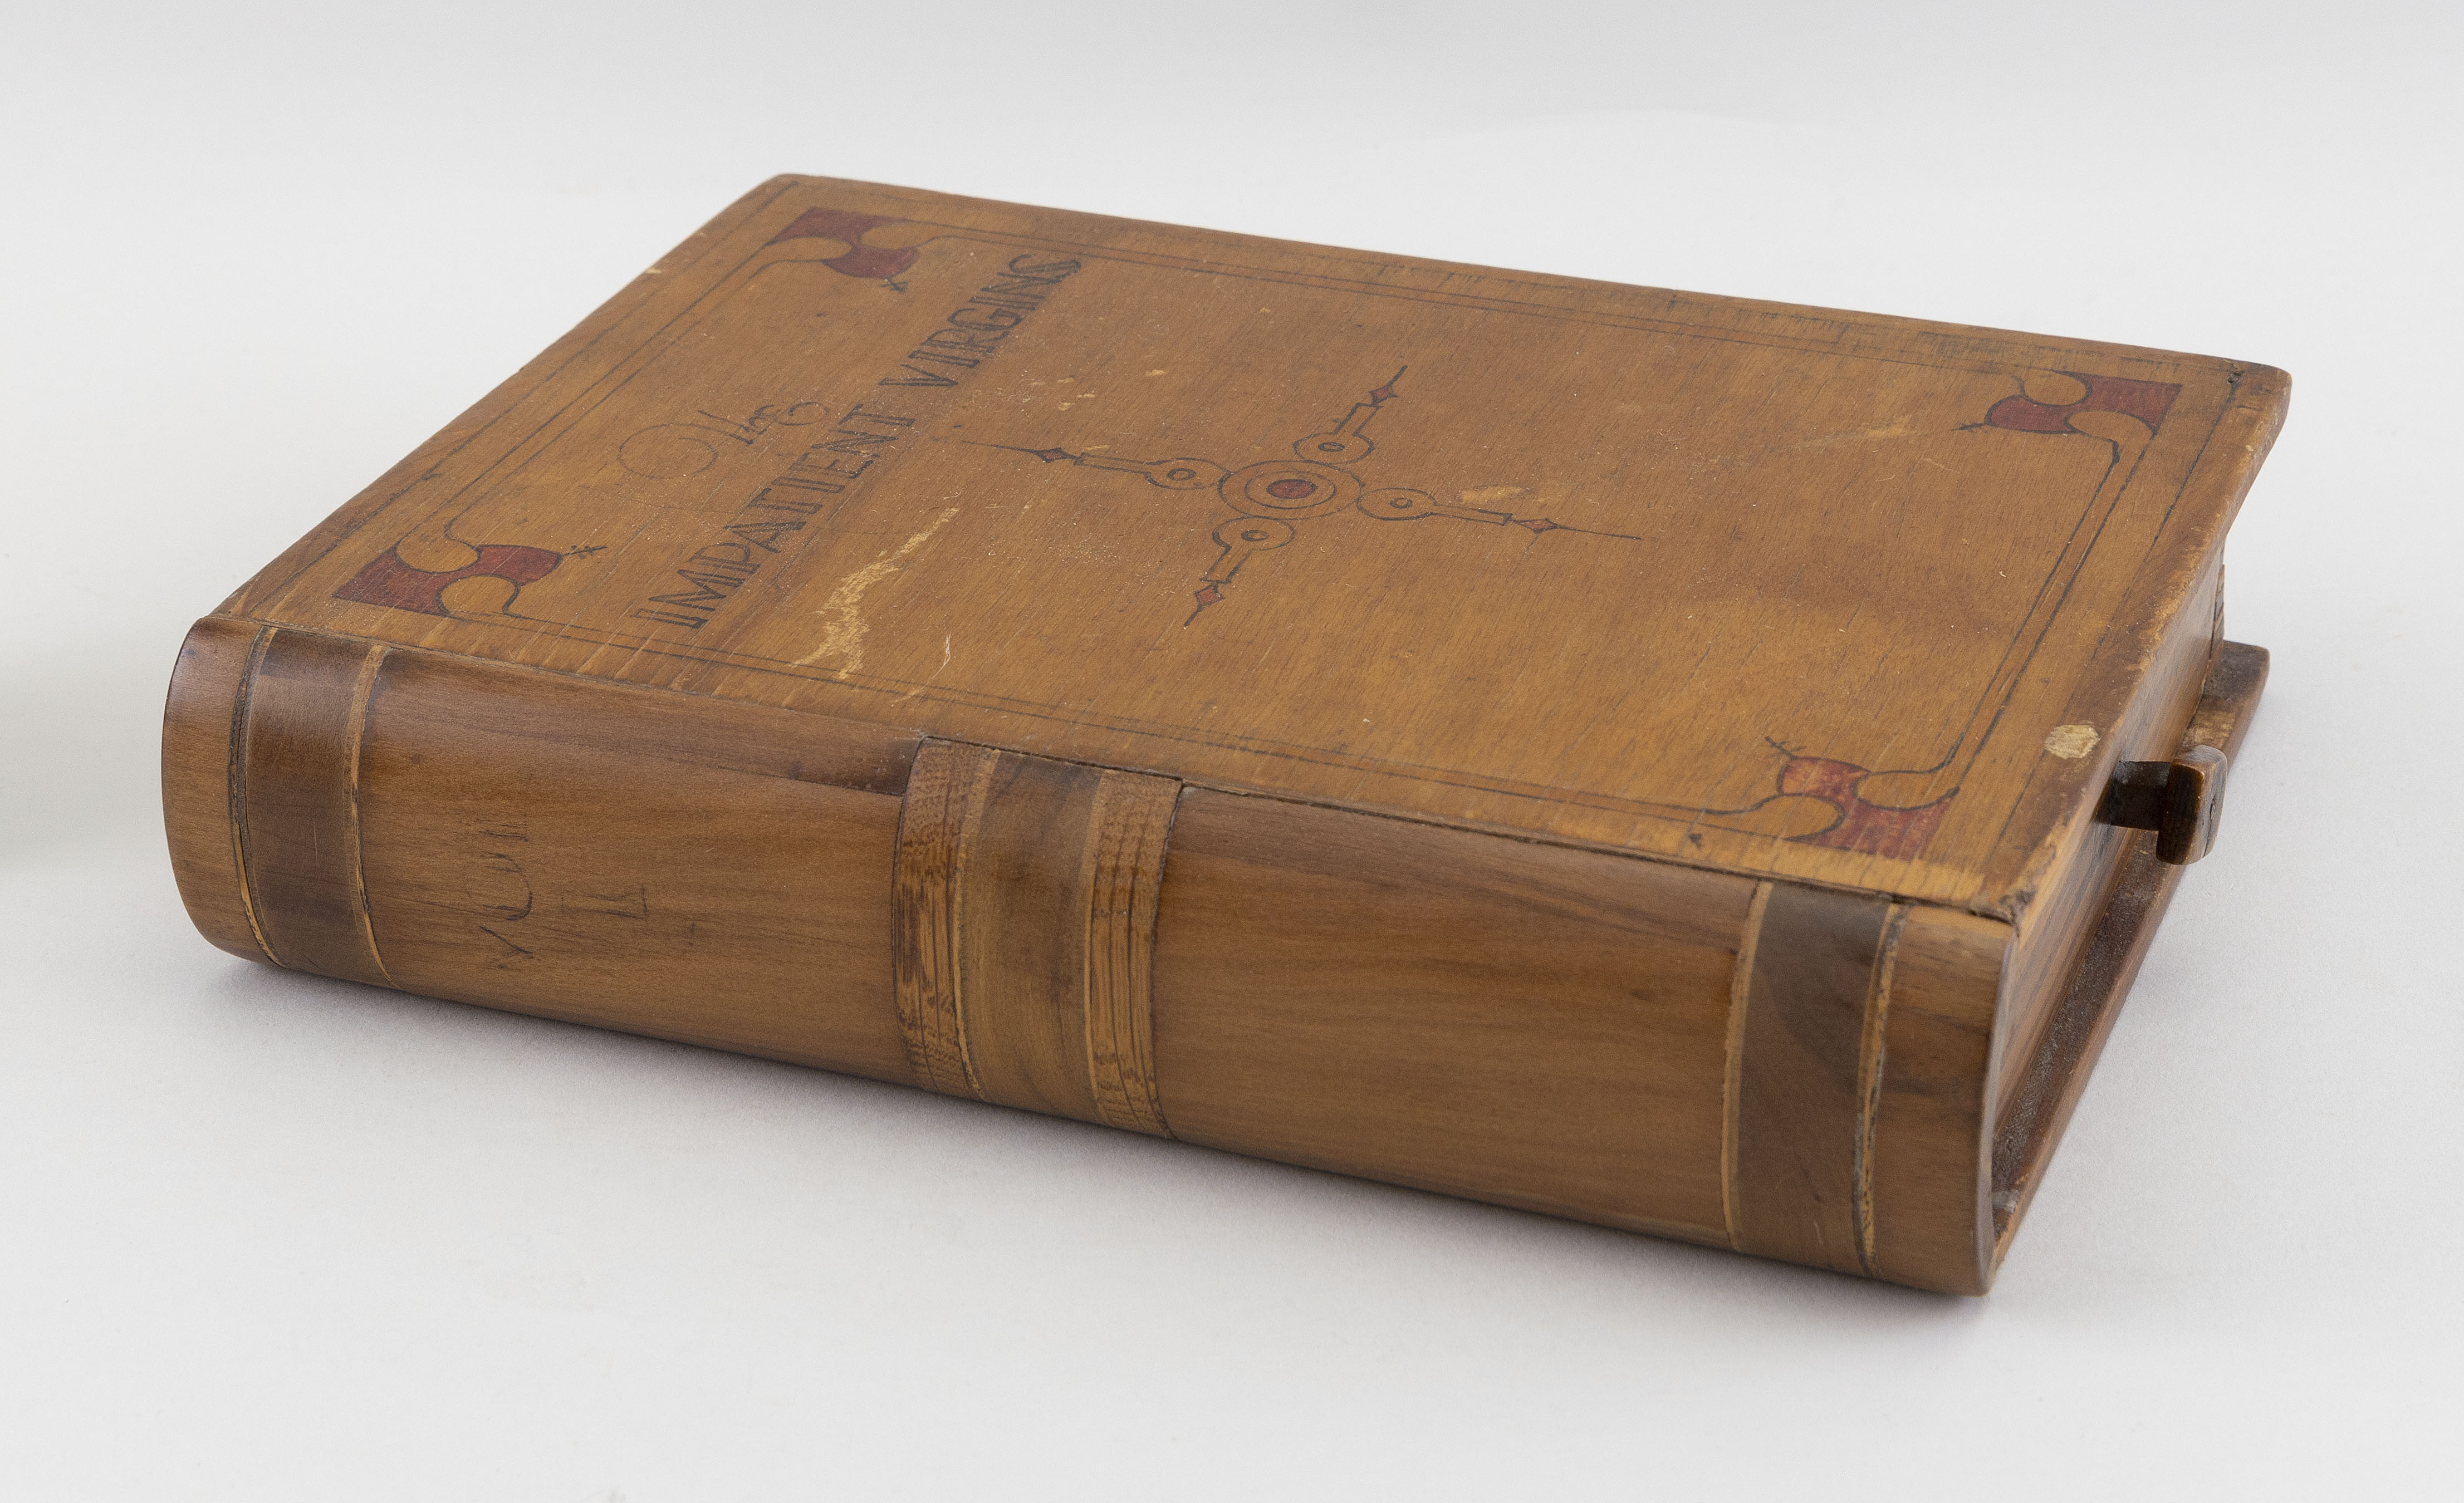 """WOODEN BOOK-FORM DRAWER BOX Late 19th/Early 20th Century 10"""" x 7.75""""."""